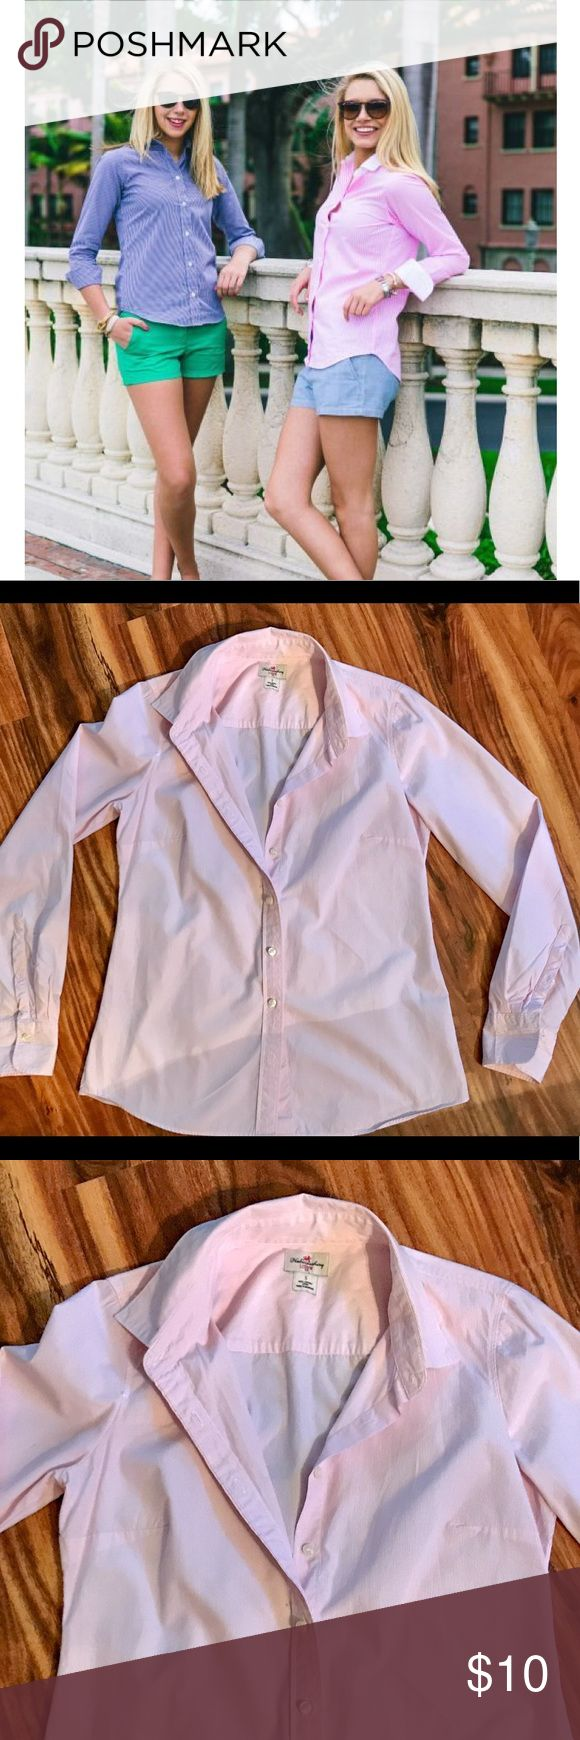 J CREW Oxford light pink & white stripped shirt. J CREW Women's Oxford shirt in a light pink and white stripped. Shirt is 100% cotton so does look best when ironed. Can be dressed up for work or dressed down with white shorts, cut offs or a boyfriend jean. Shirt is in perfect condition - no marks, stains and all buttons attached! Size Medium. J. Crew Tops Button Down Shirts